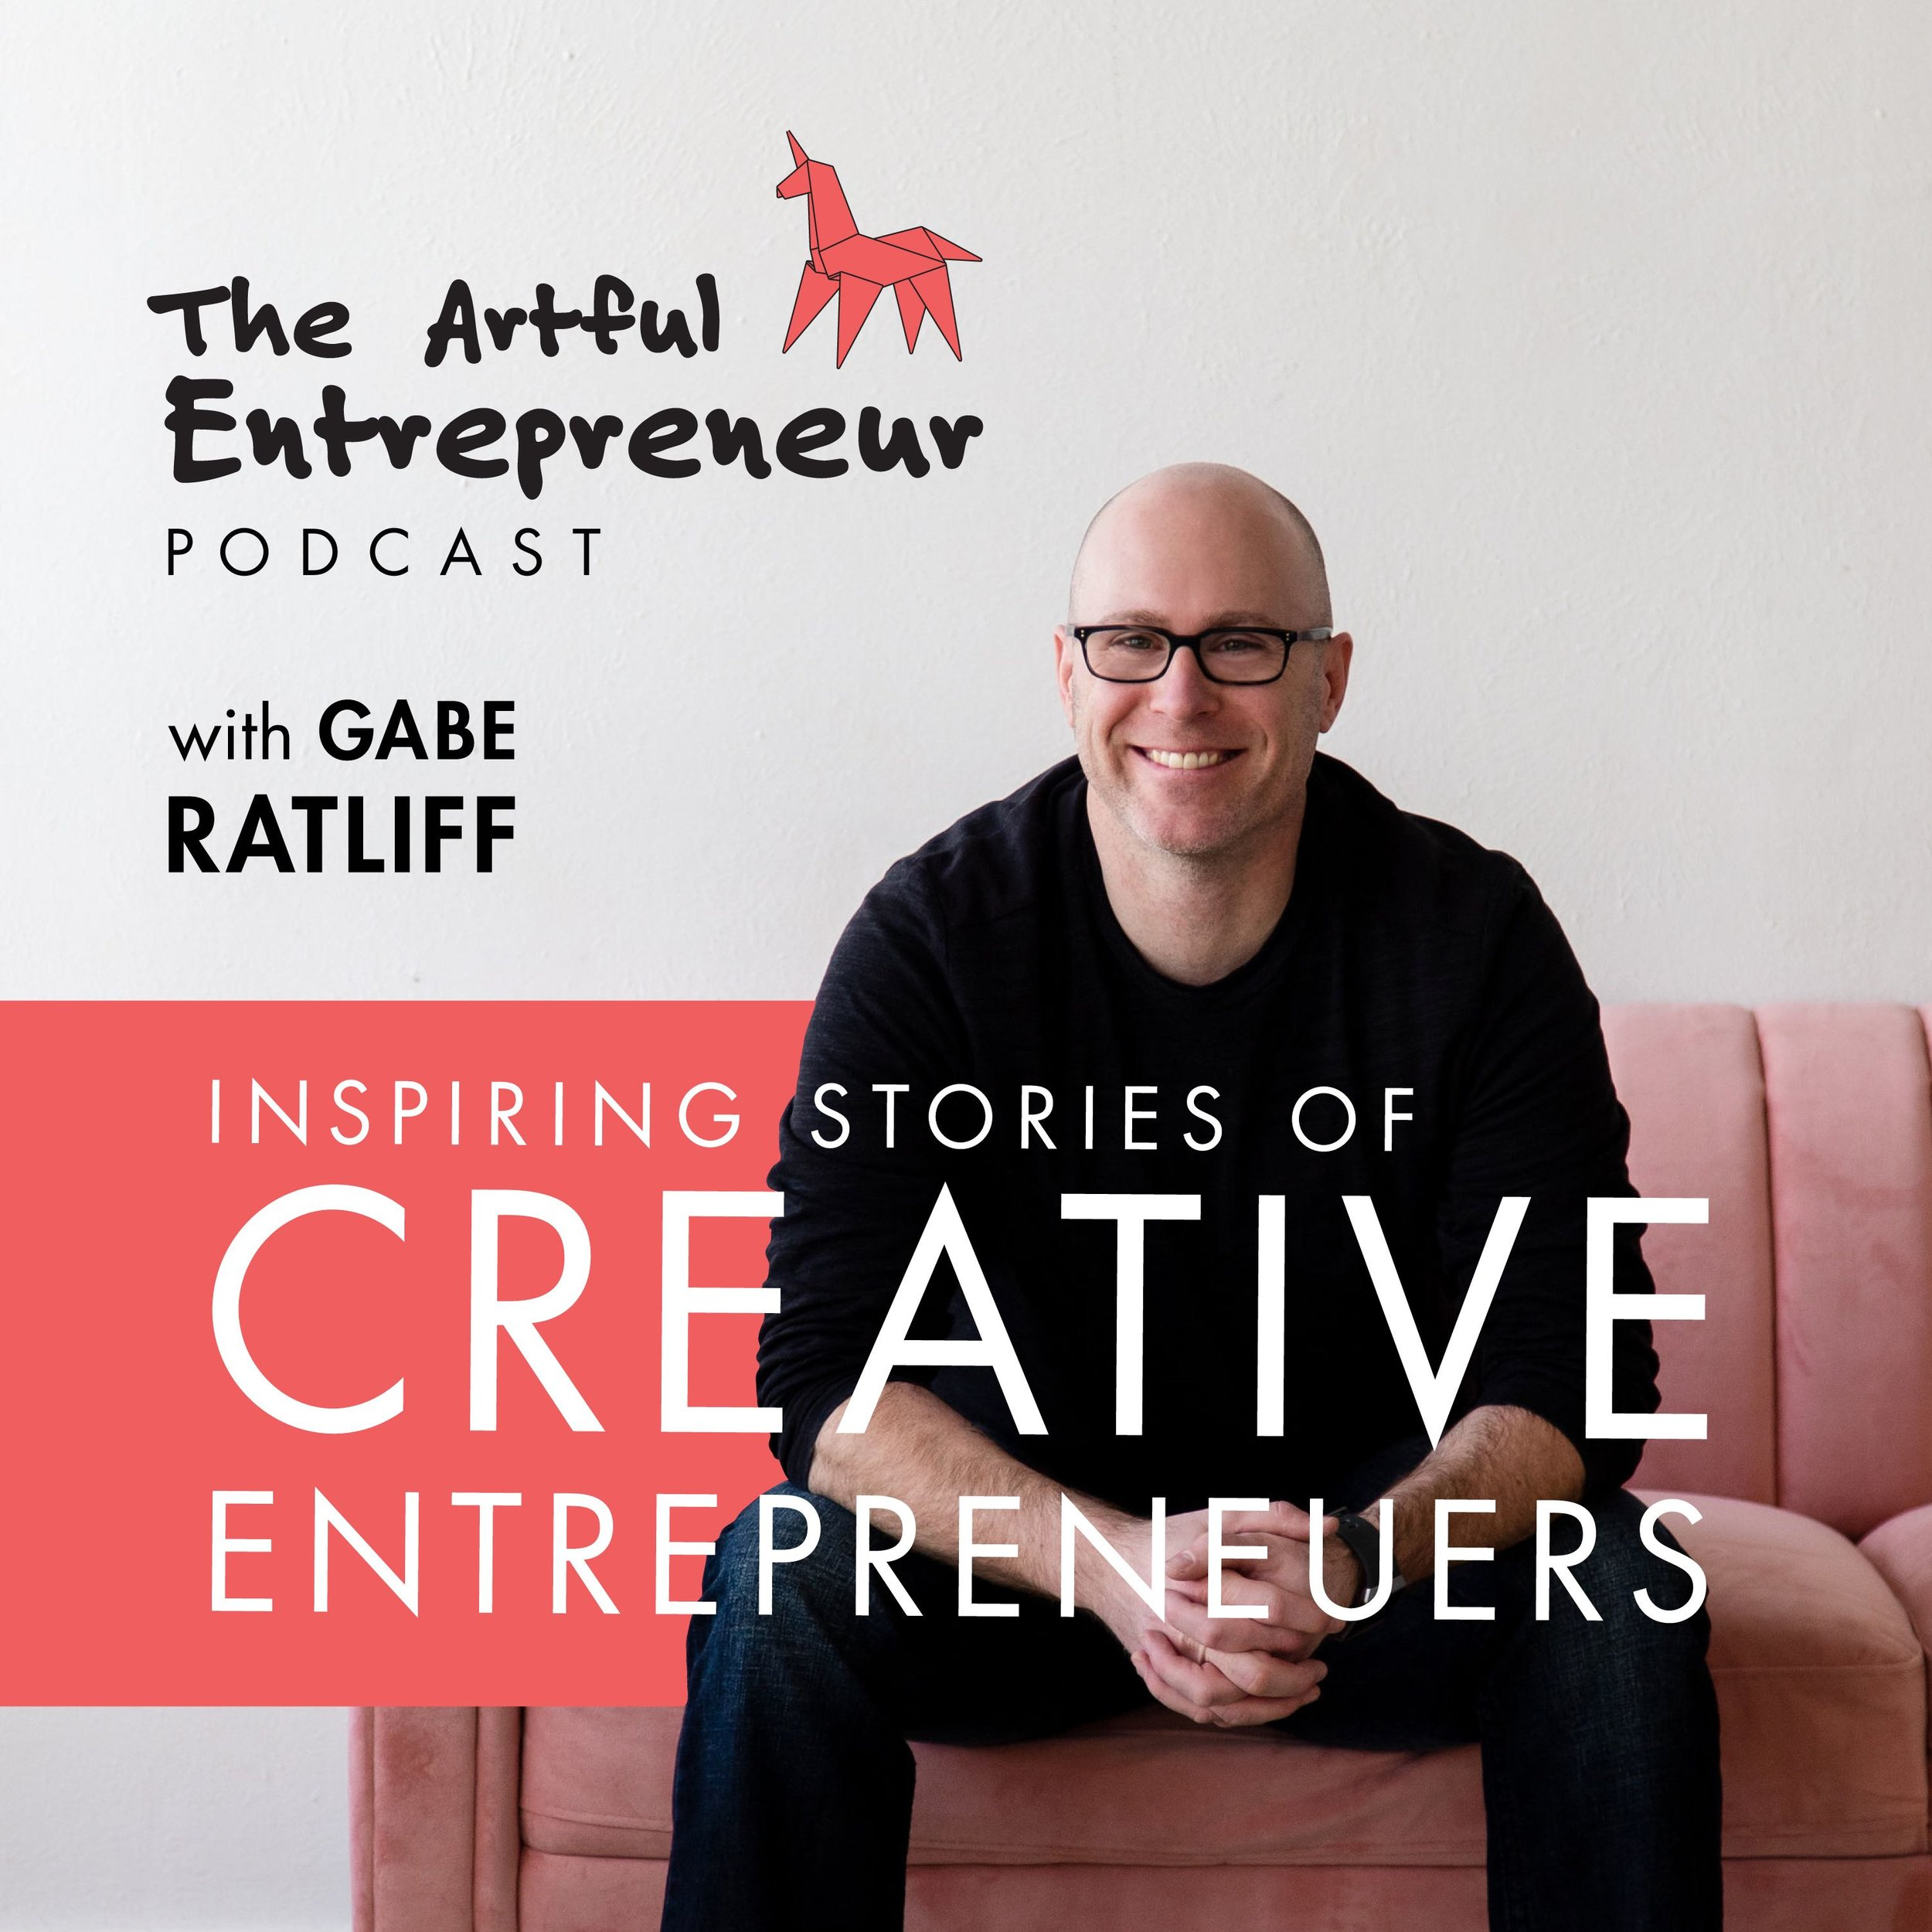 The Artful Entrepreneur Podcast with Gabe Ratliff: Inspiring Stories of Creative Entrepreneurs